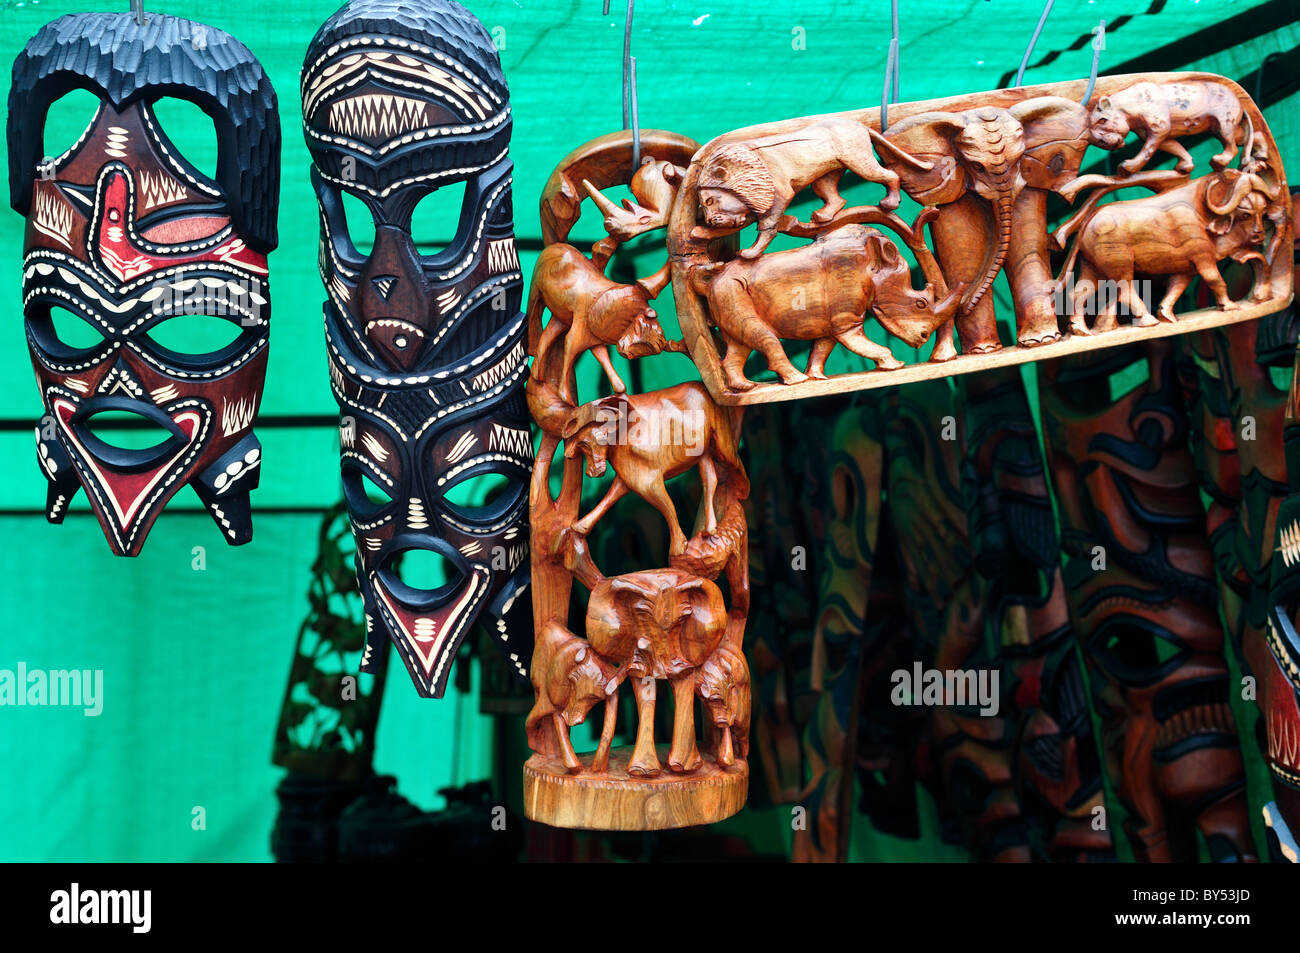 Wood carvings for sale as souvenirs at the market cape